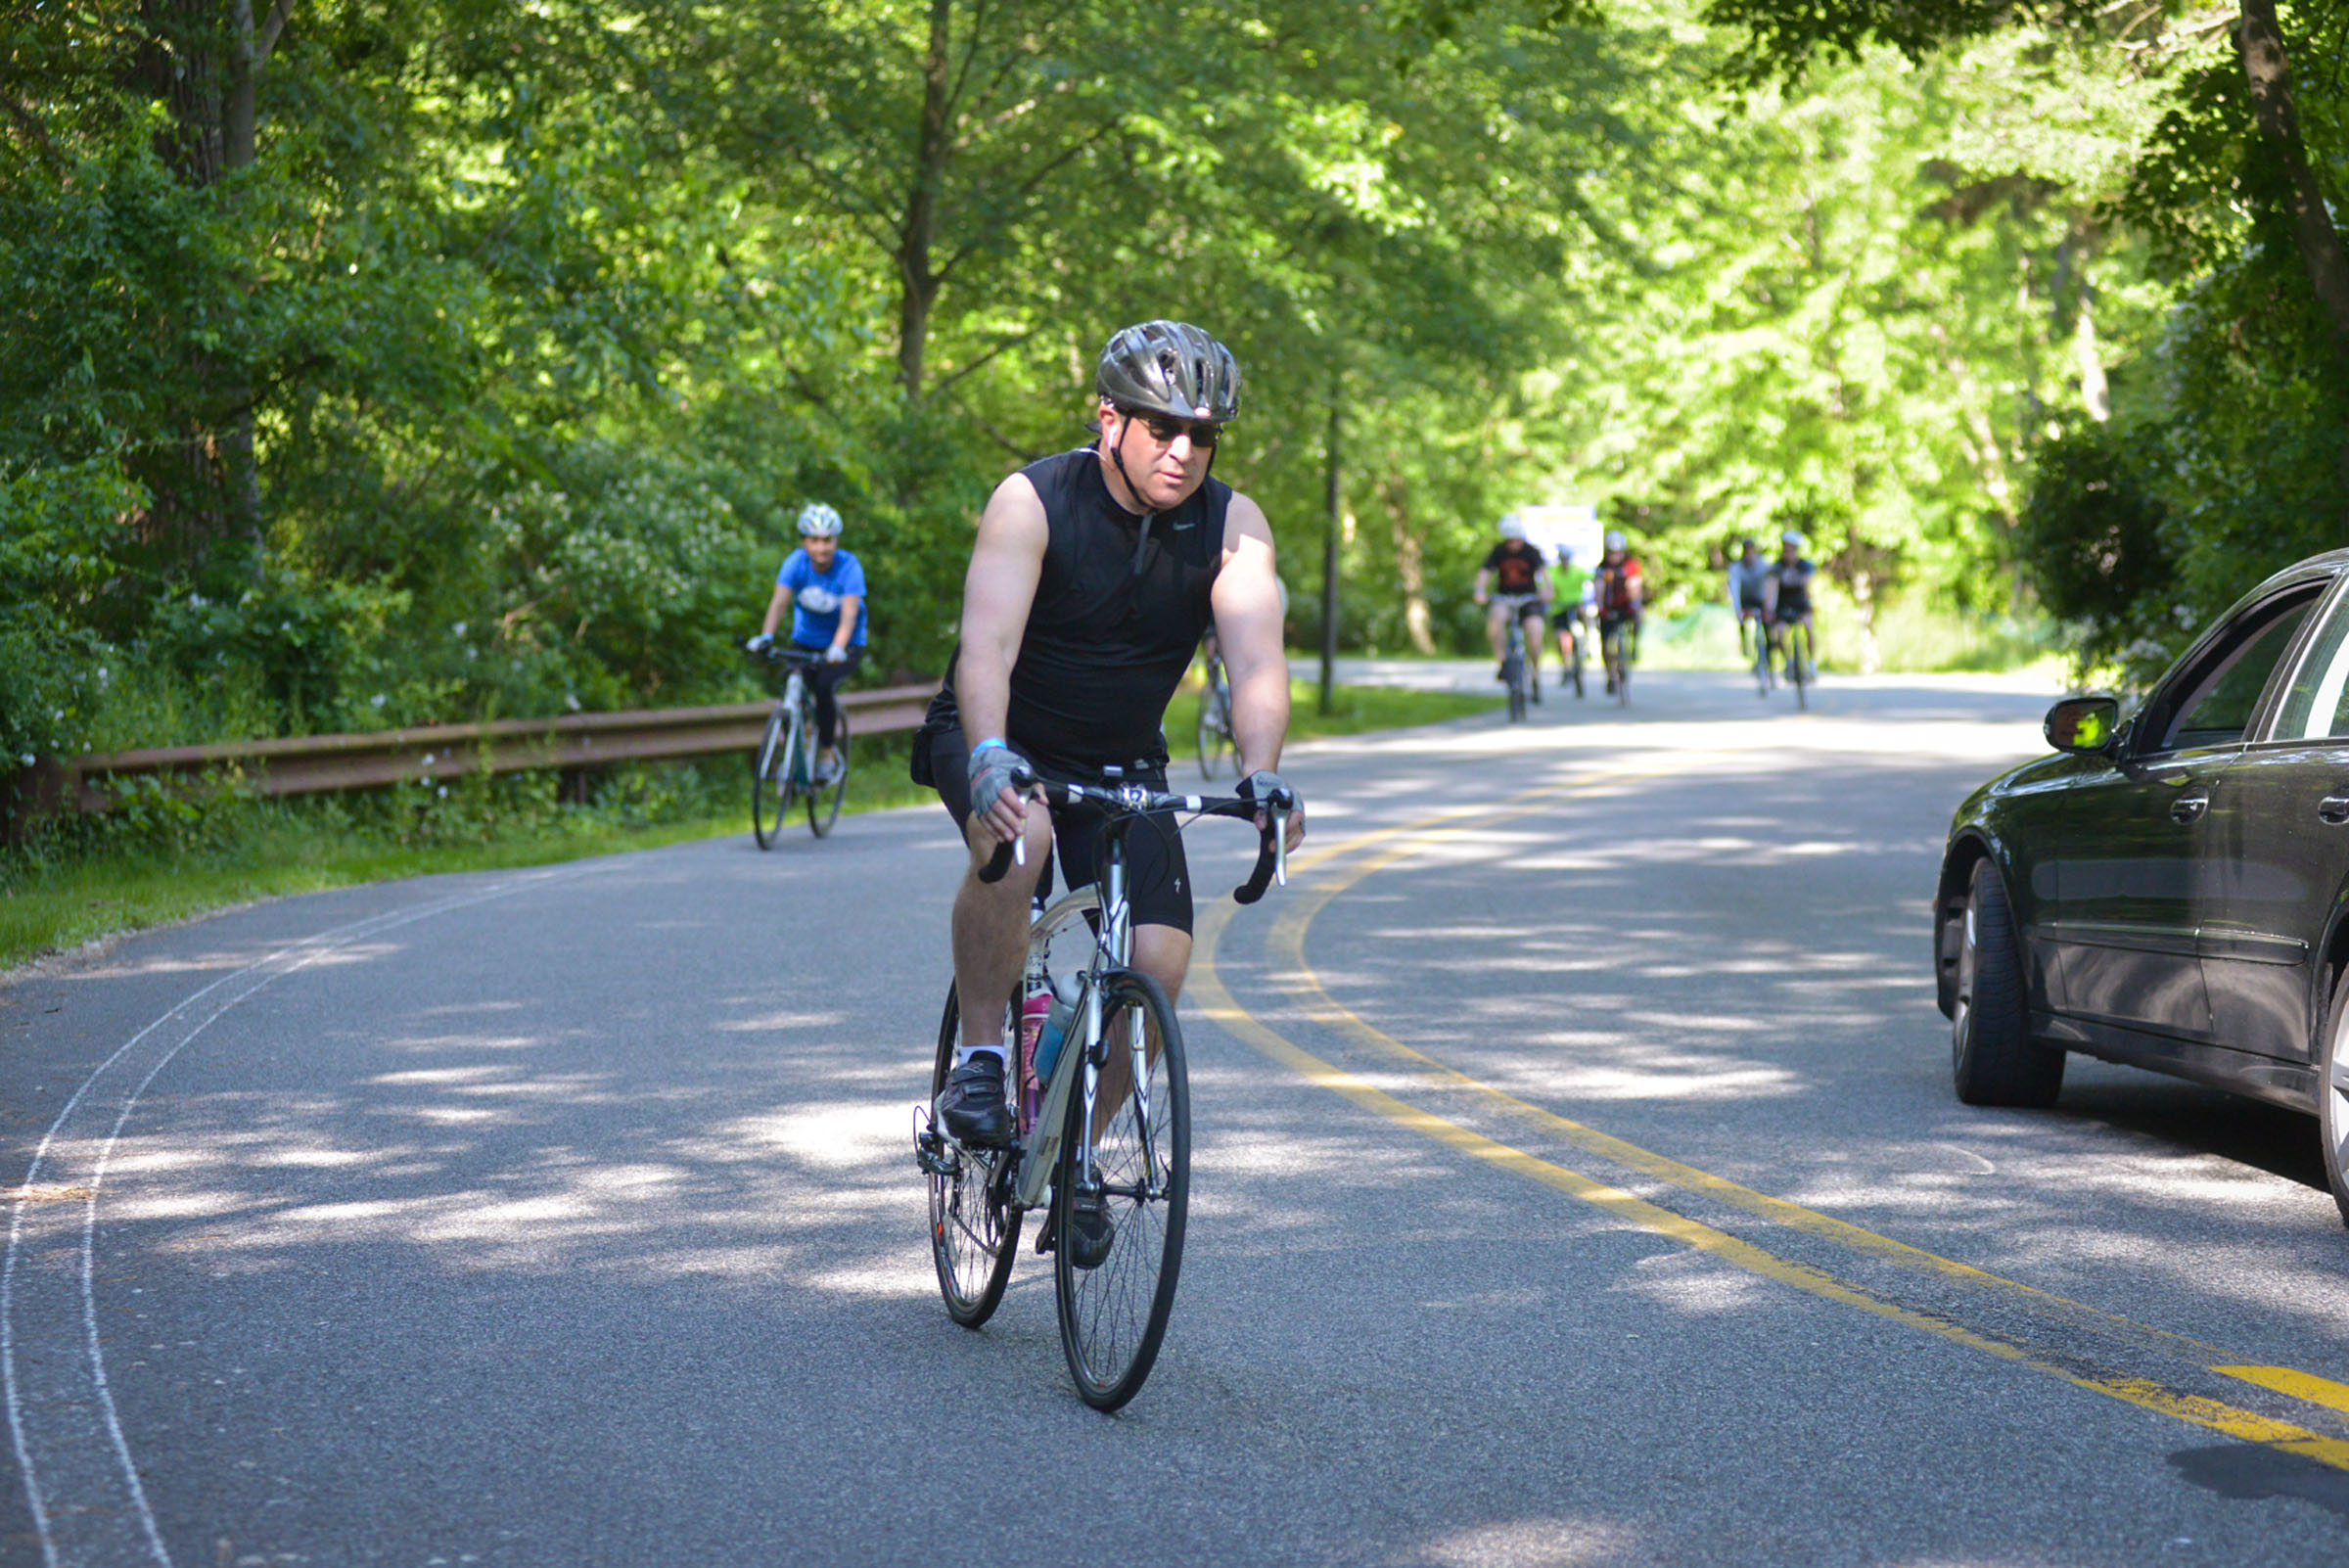 2017-06-04 GTD4A Charity Bike Ride - BCC - Paramus NJ-1858.jpg